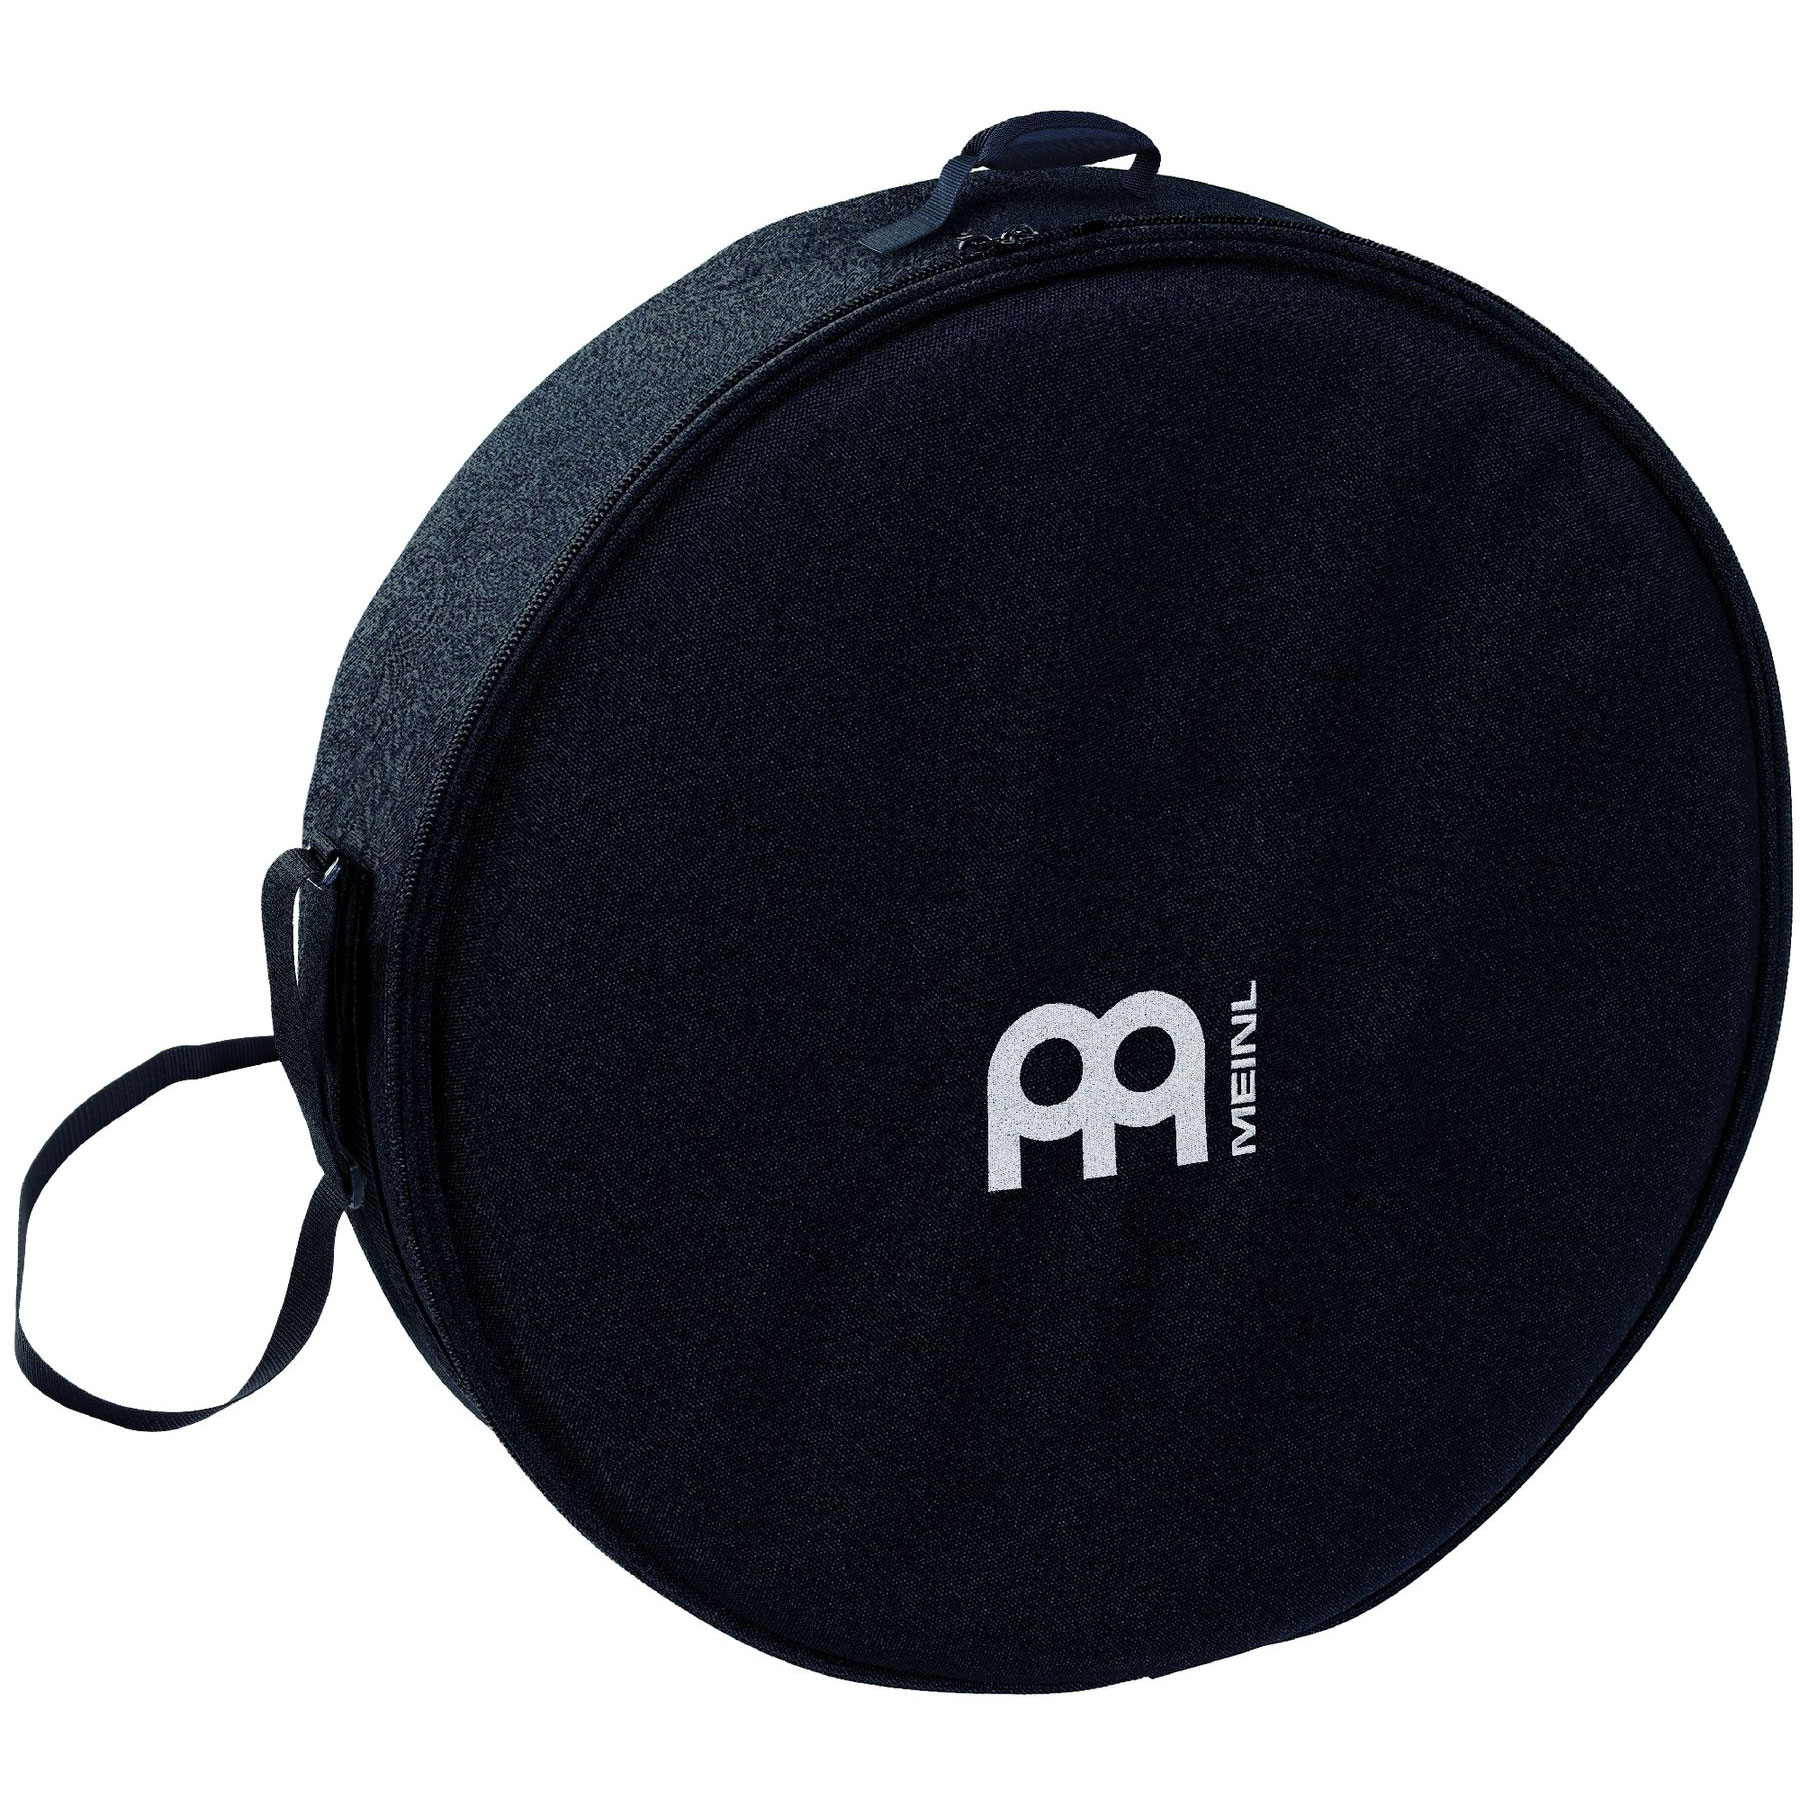 "Meinl 20"" (Diameter) Professional Frame Drum Bag"